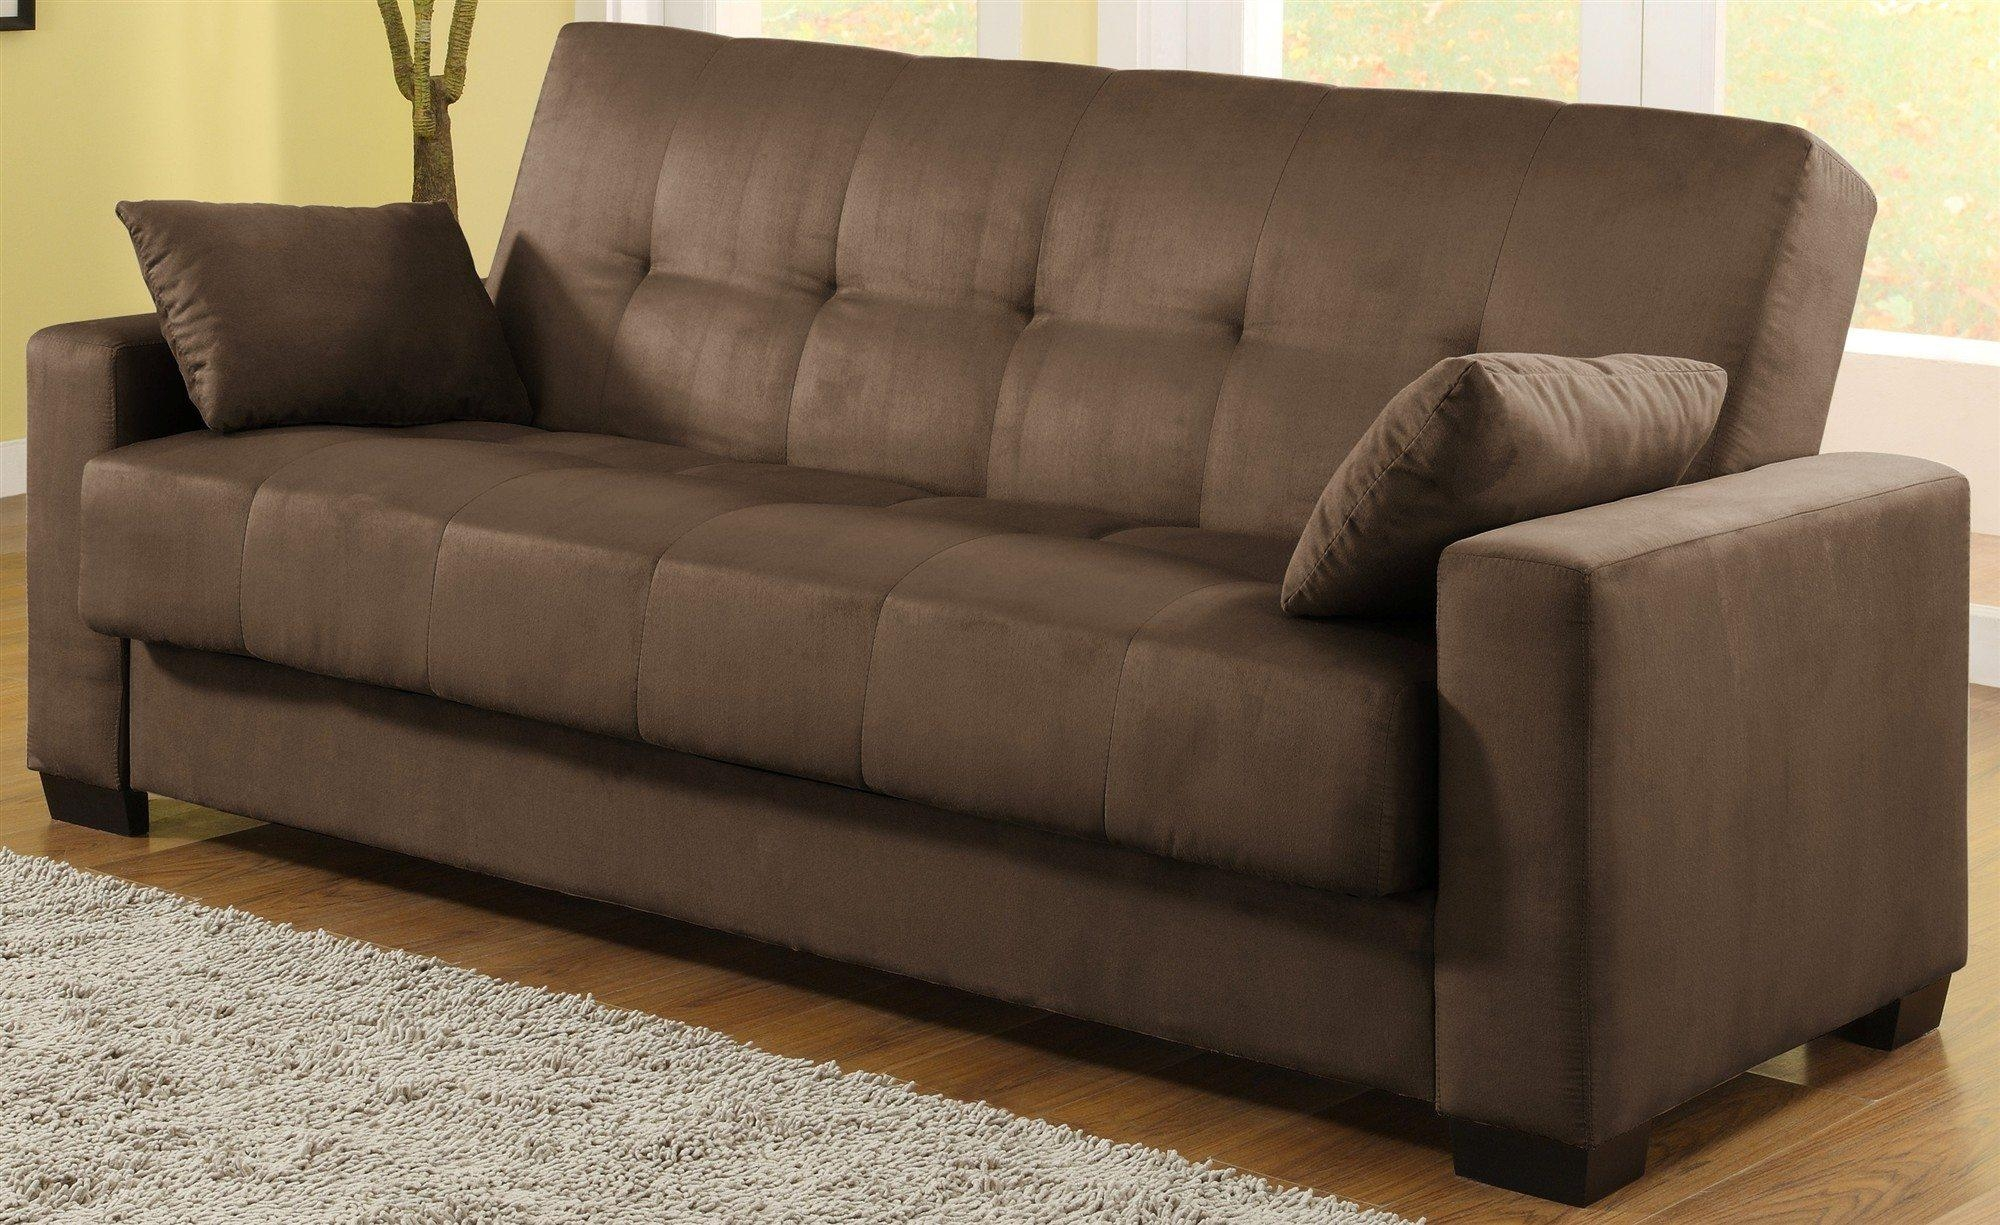 Trend Chai Microsuede Sofa Bed 94 With Additional Top Rated Sofa With Chai Microsuede Sofa Beds (Image 19 of 20)